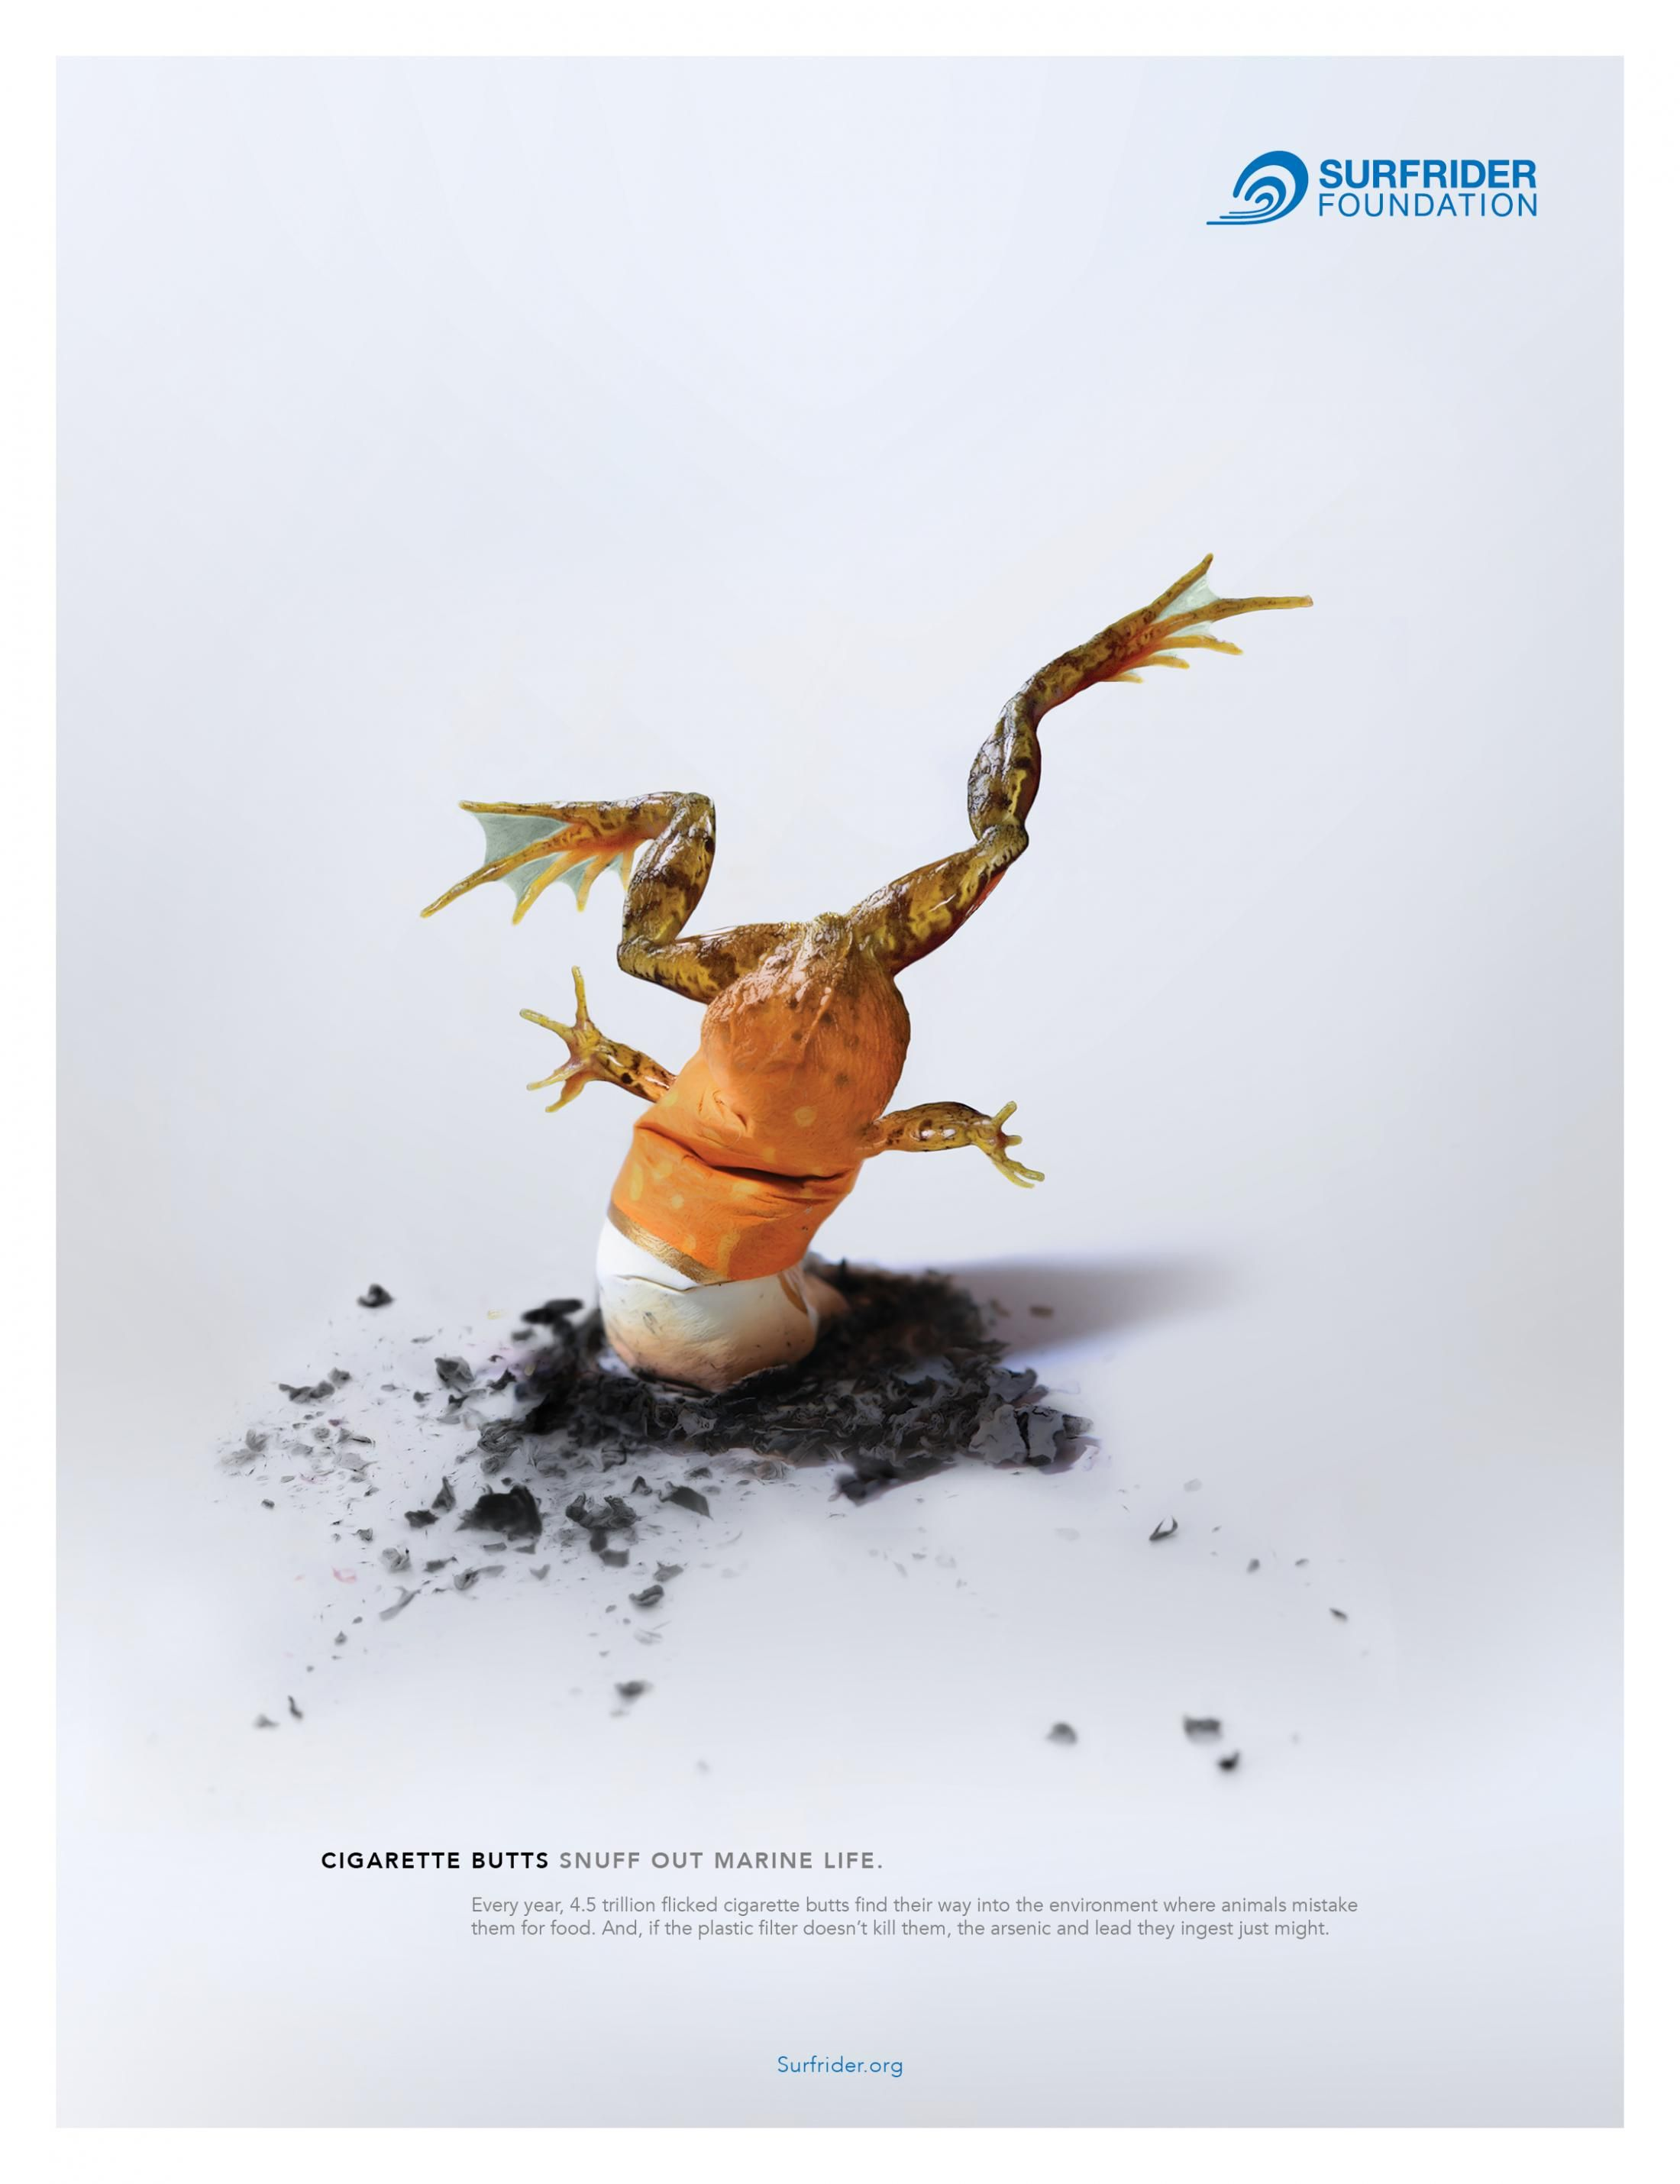 Surfrider Foundation Print Ad - Snuffed Out Marine Life, 2 ...